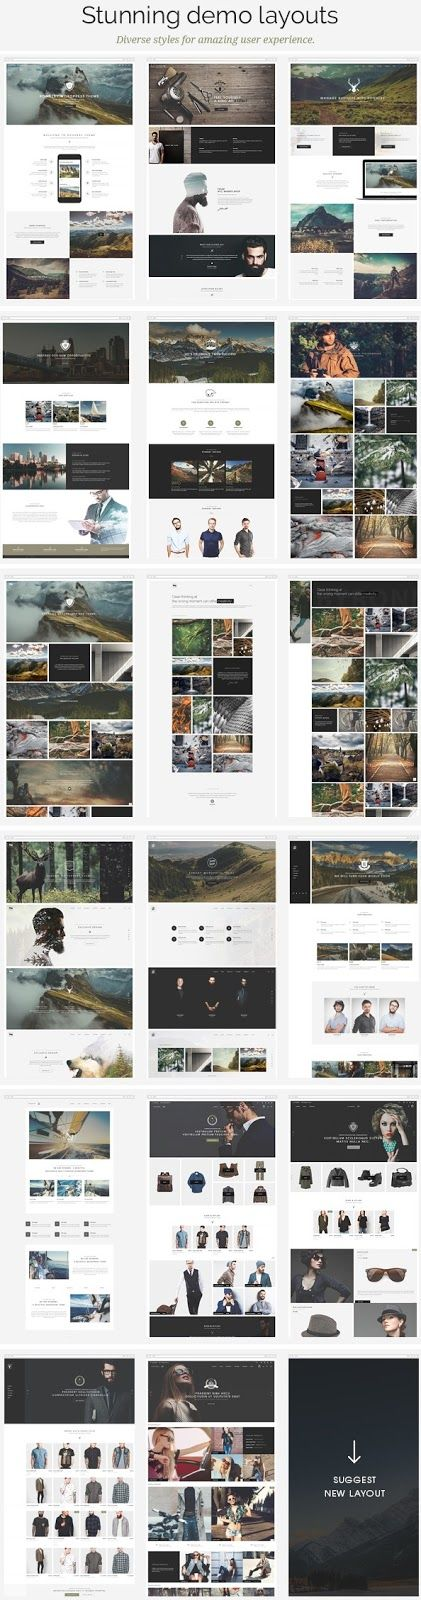 Best Multipurpose Responsive WordPress Theme 2015:  The new age of web development starts with the Ronneby #WordPress Theme. It has 18 incredible unique layouts. 13 Stylish blog and 41 portfolio page will shape your works with versatile templates. Responsive and #UX #design are its core features.